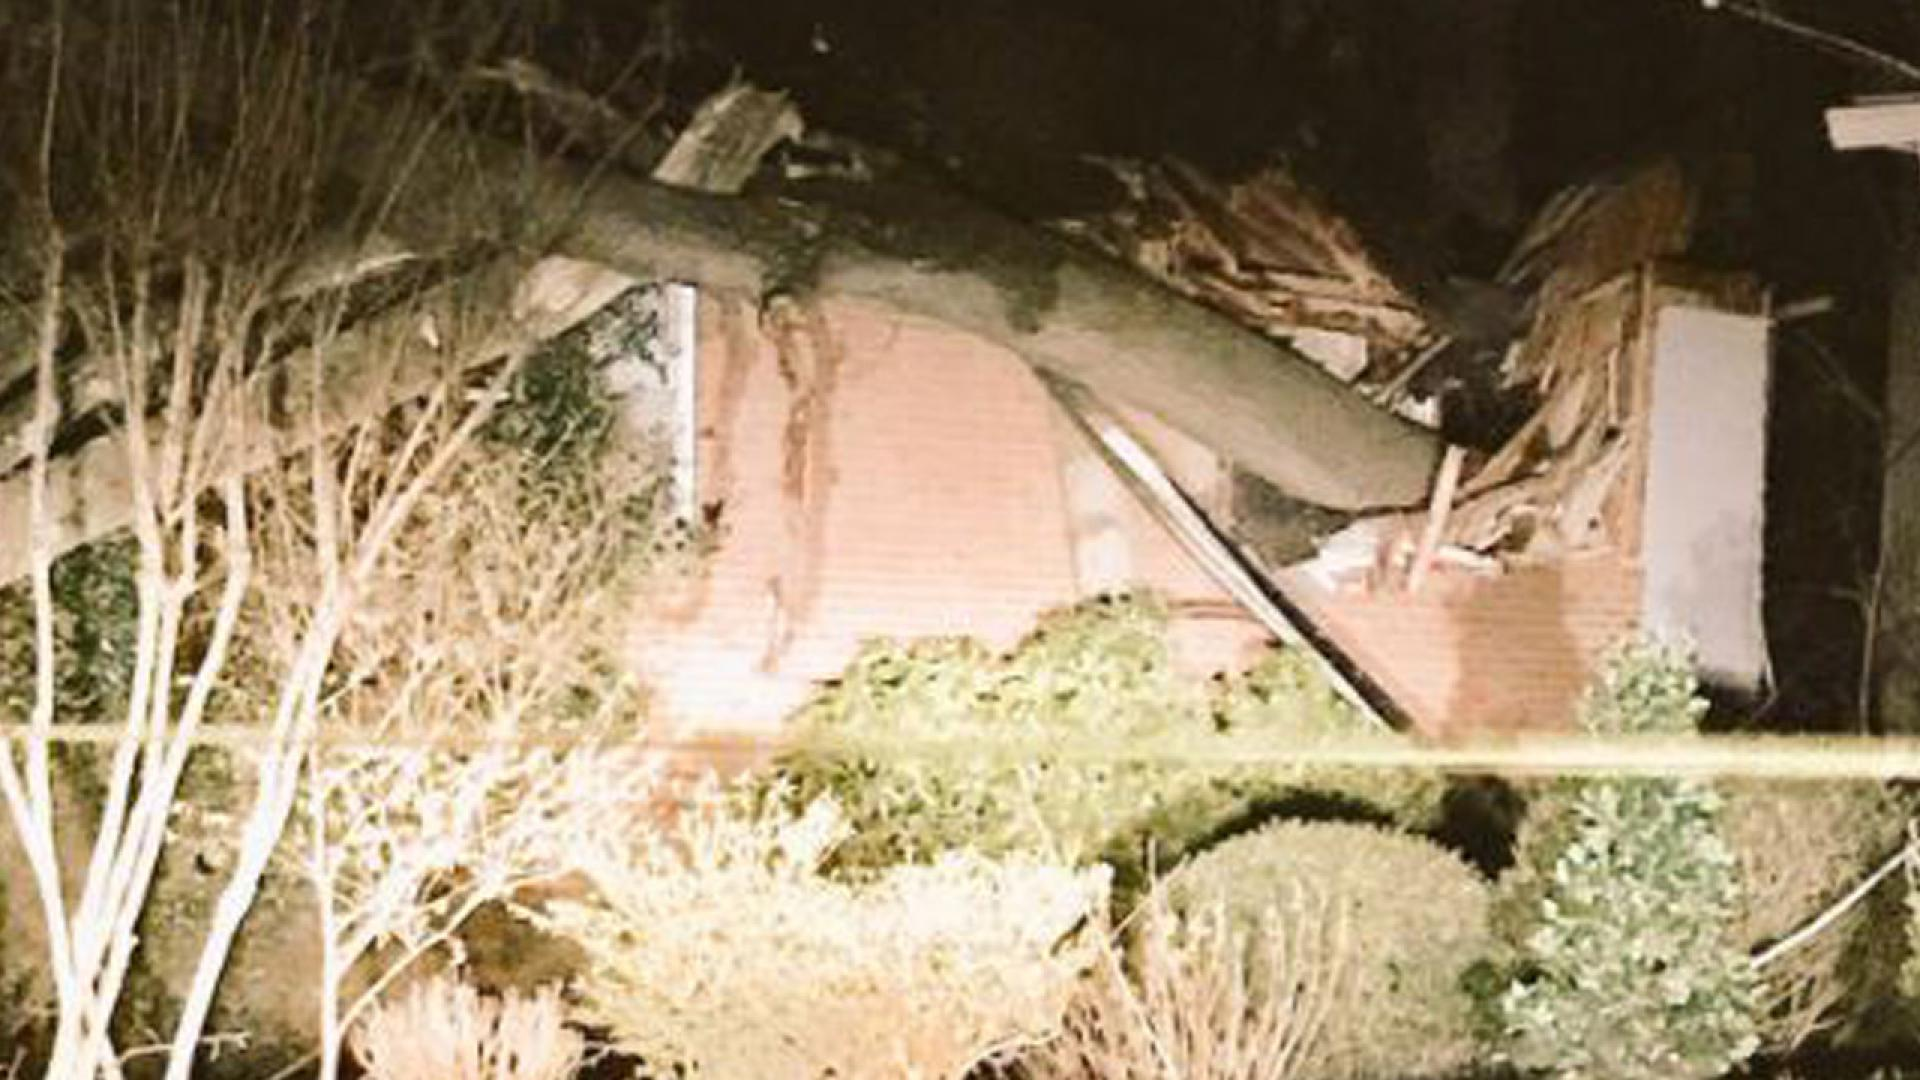 A 100-year-old woman was in her bedroom when a tree came crashing through.